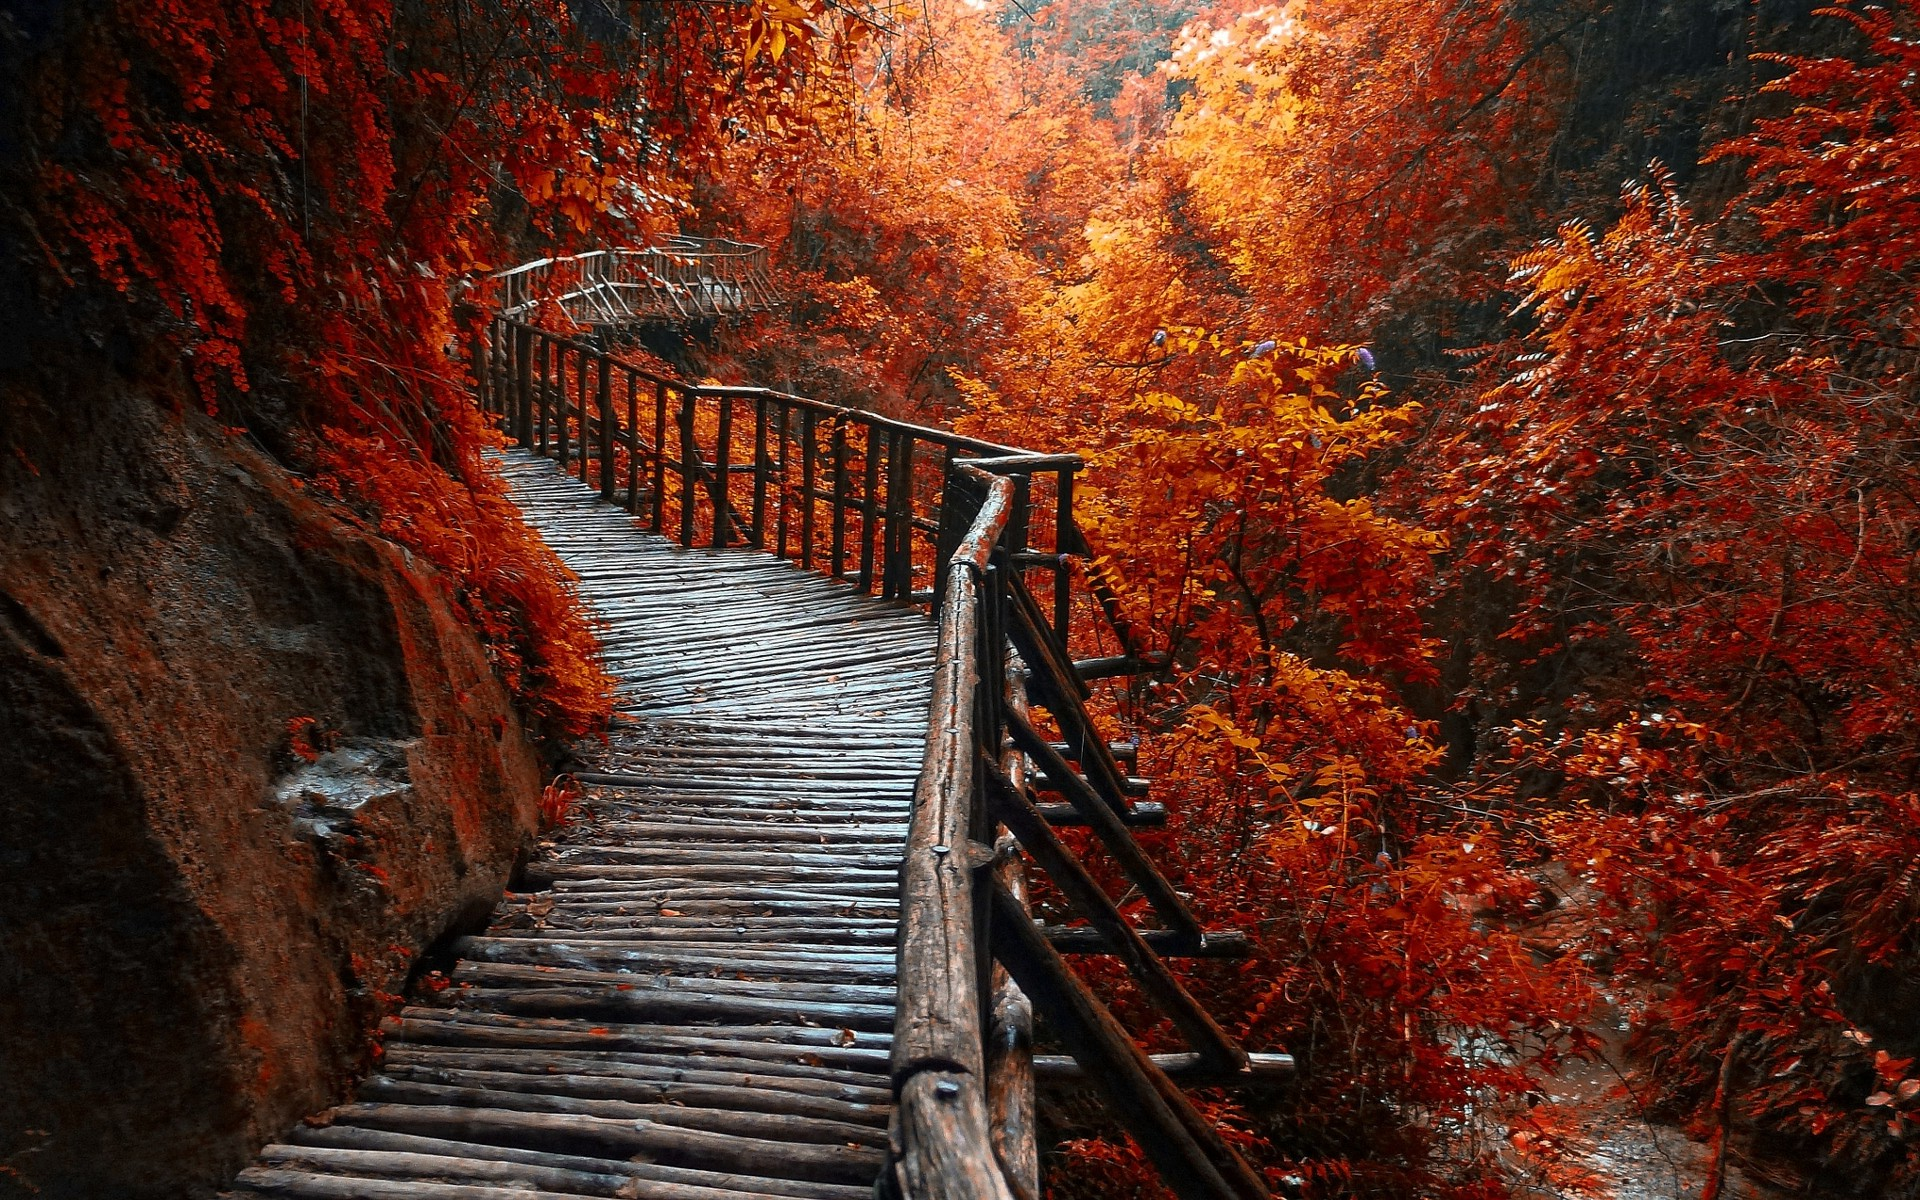 Fall Leaves Pathway Computer Wallpaper Nature Landscape River Forest Fall Walkway Path